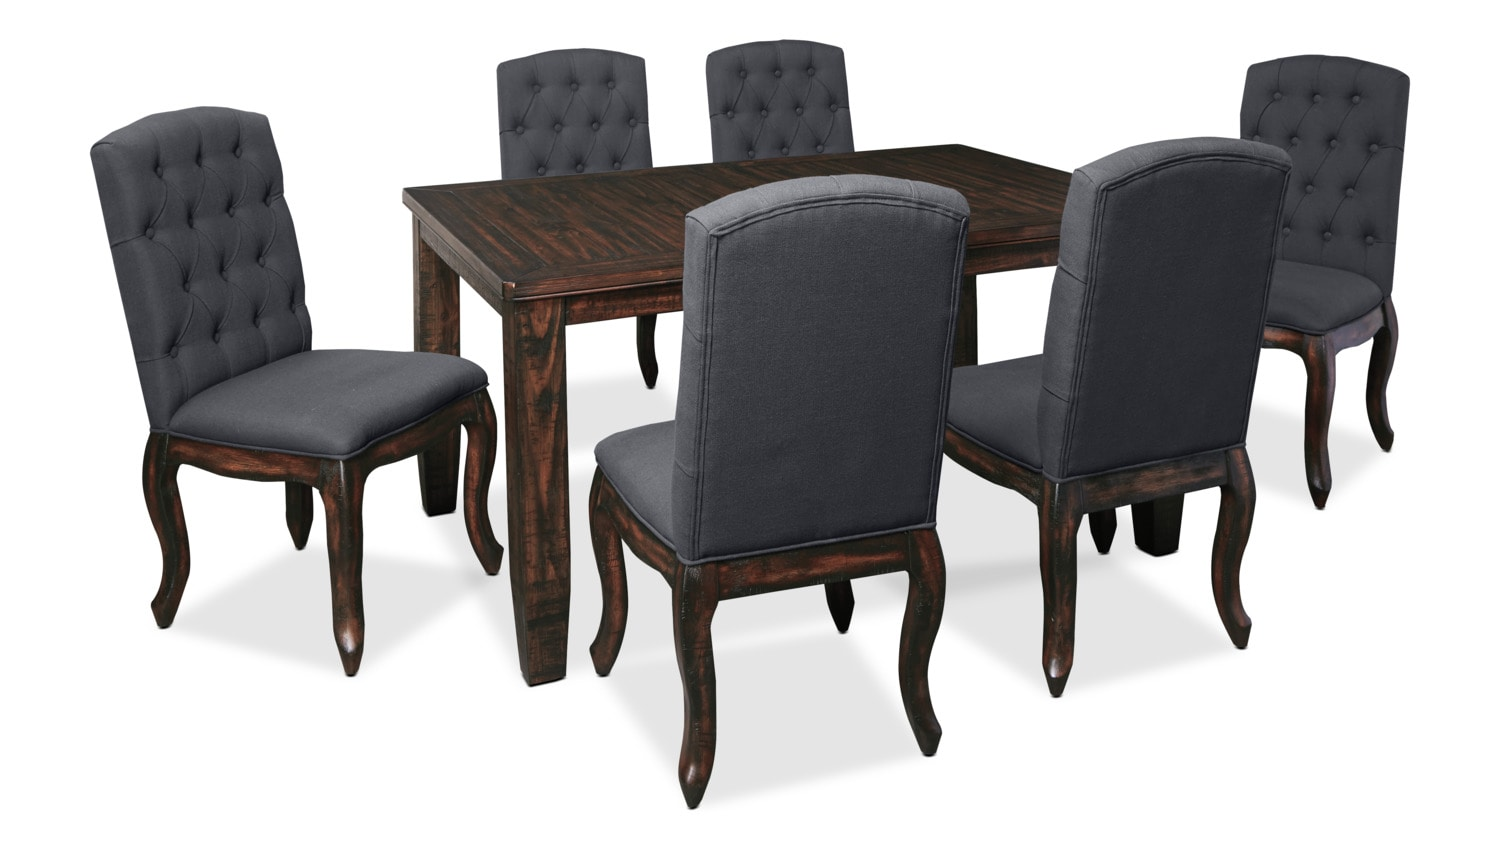 Trudell 7-Piece Dining Package with Upholstered Chairs